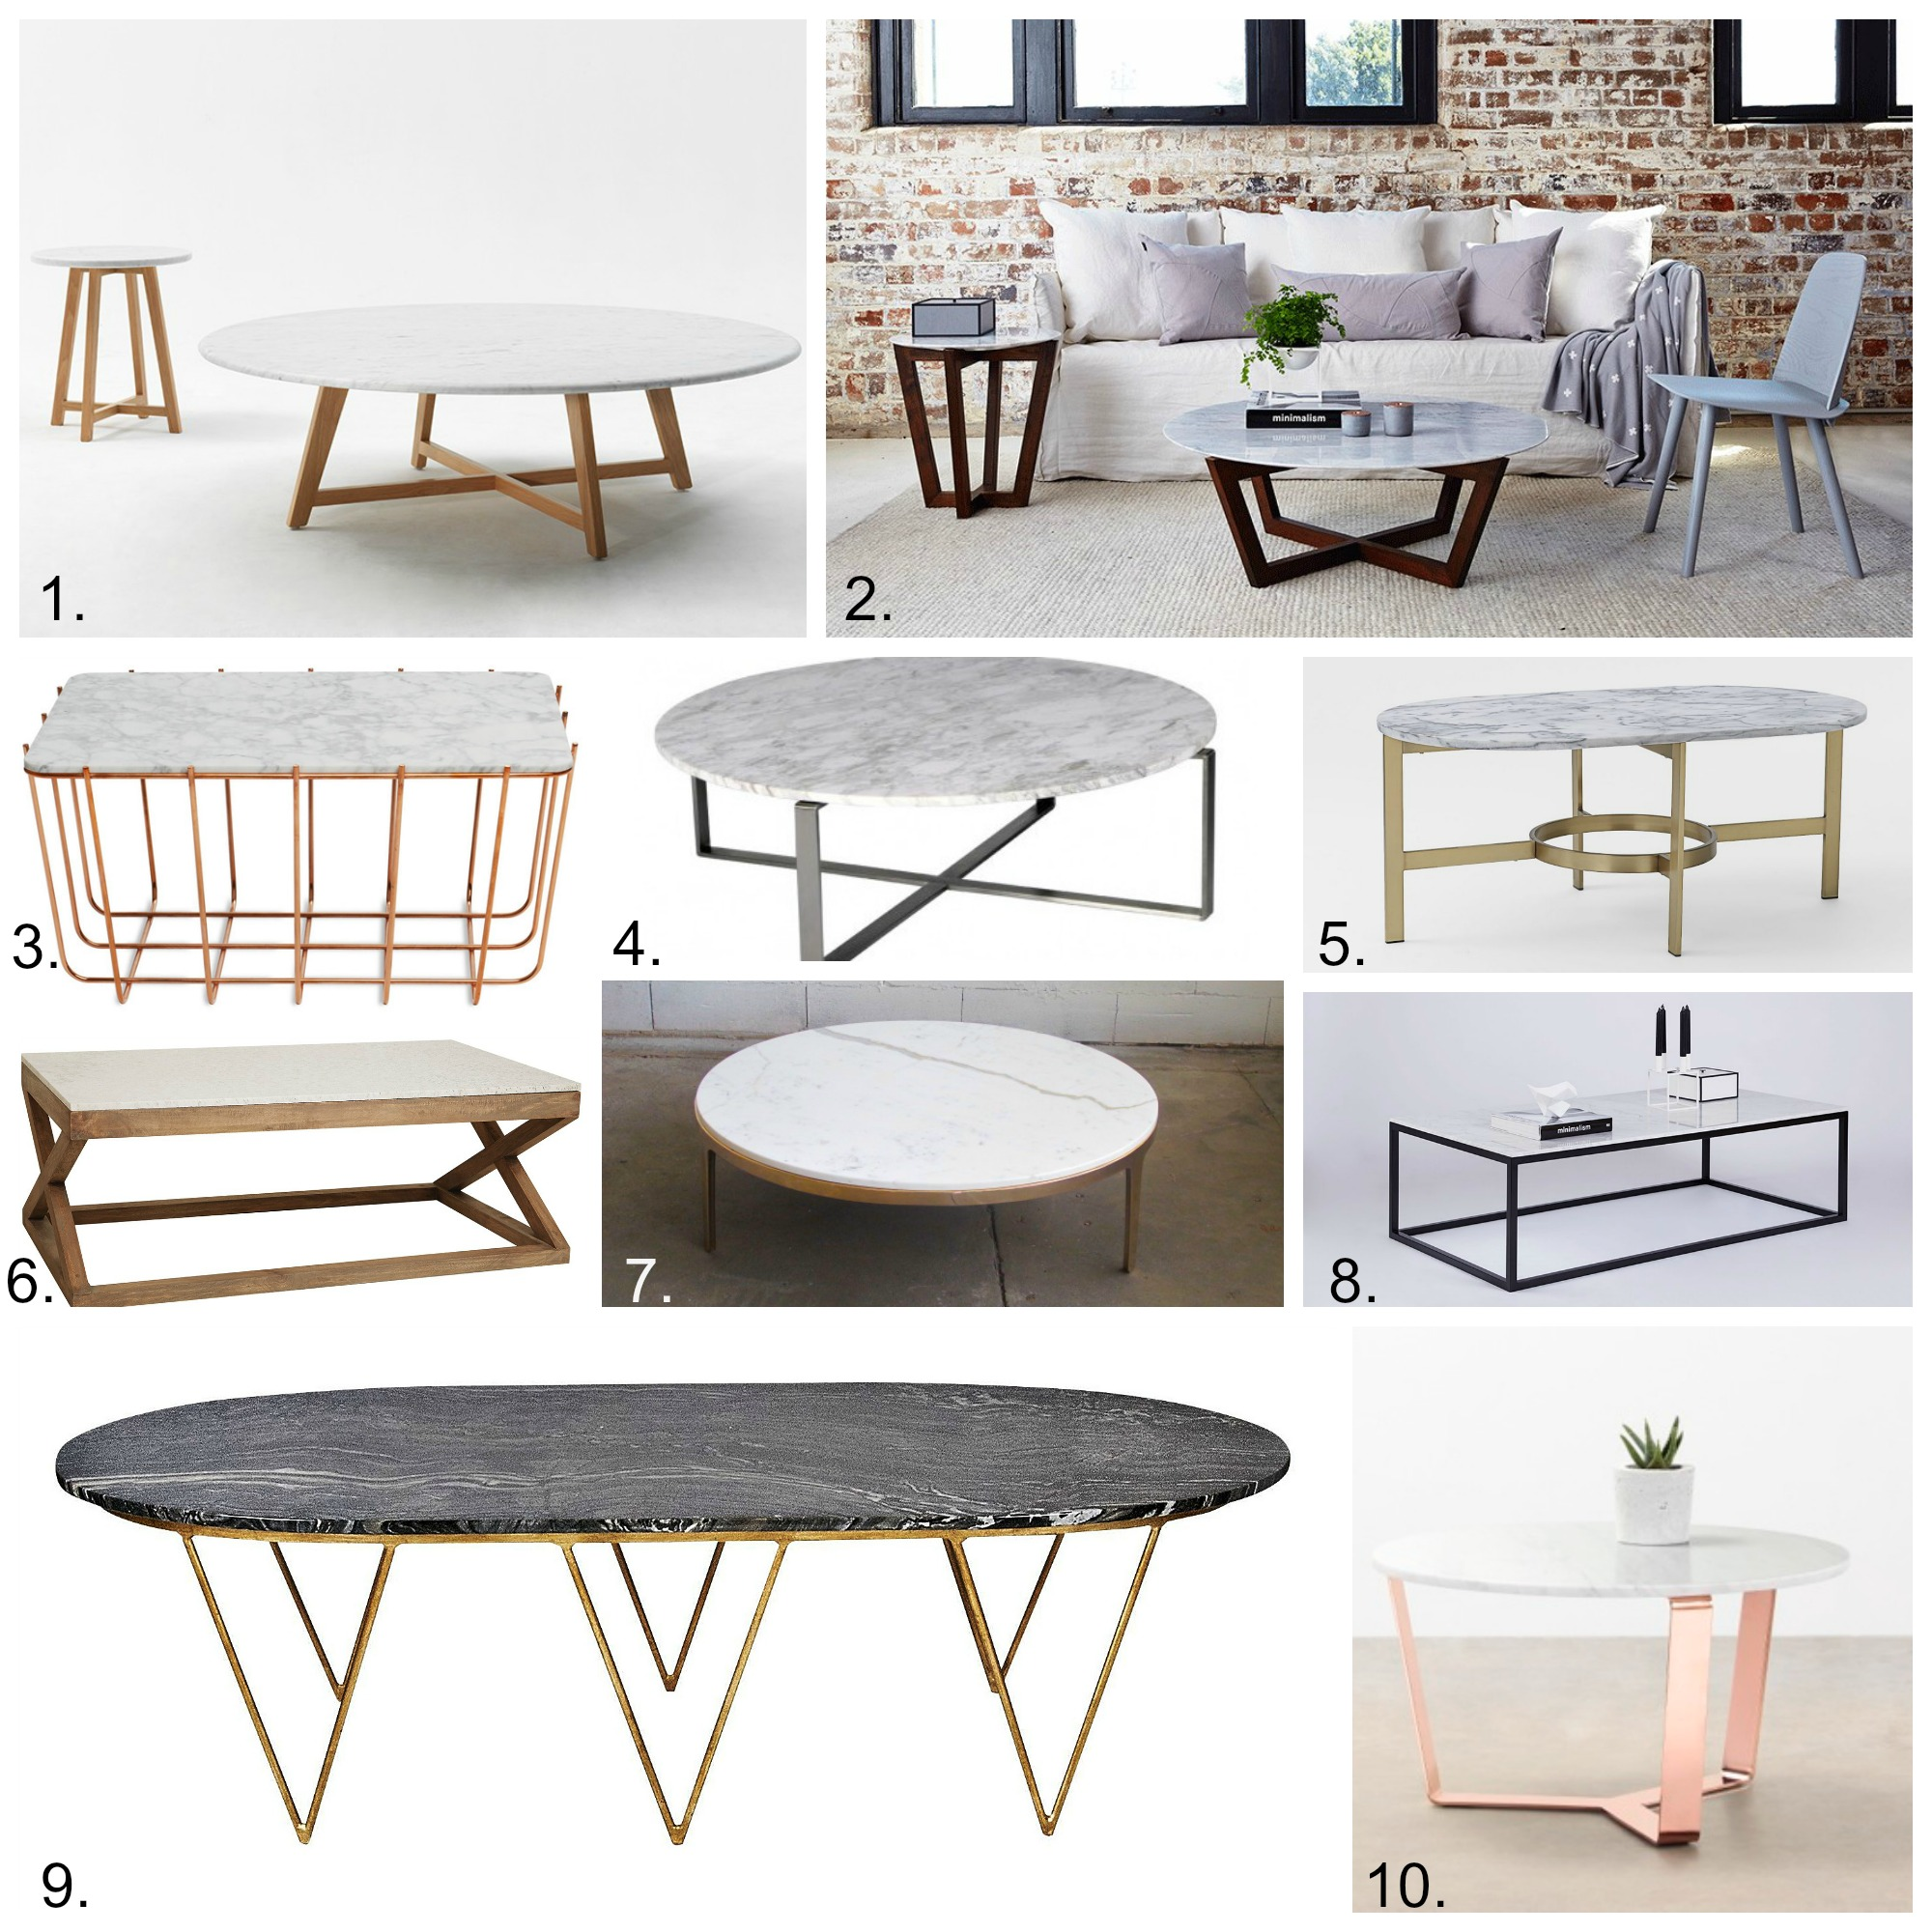 Marble Coffee Tables Shop my links ELEMENTS AT HOME